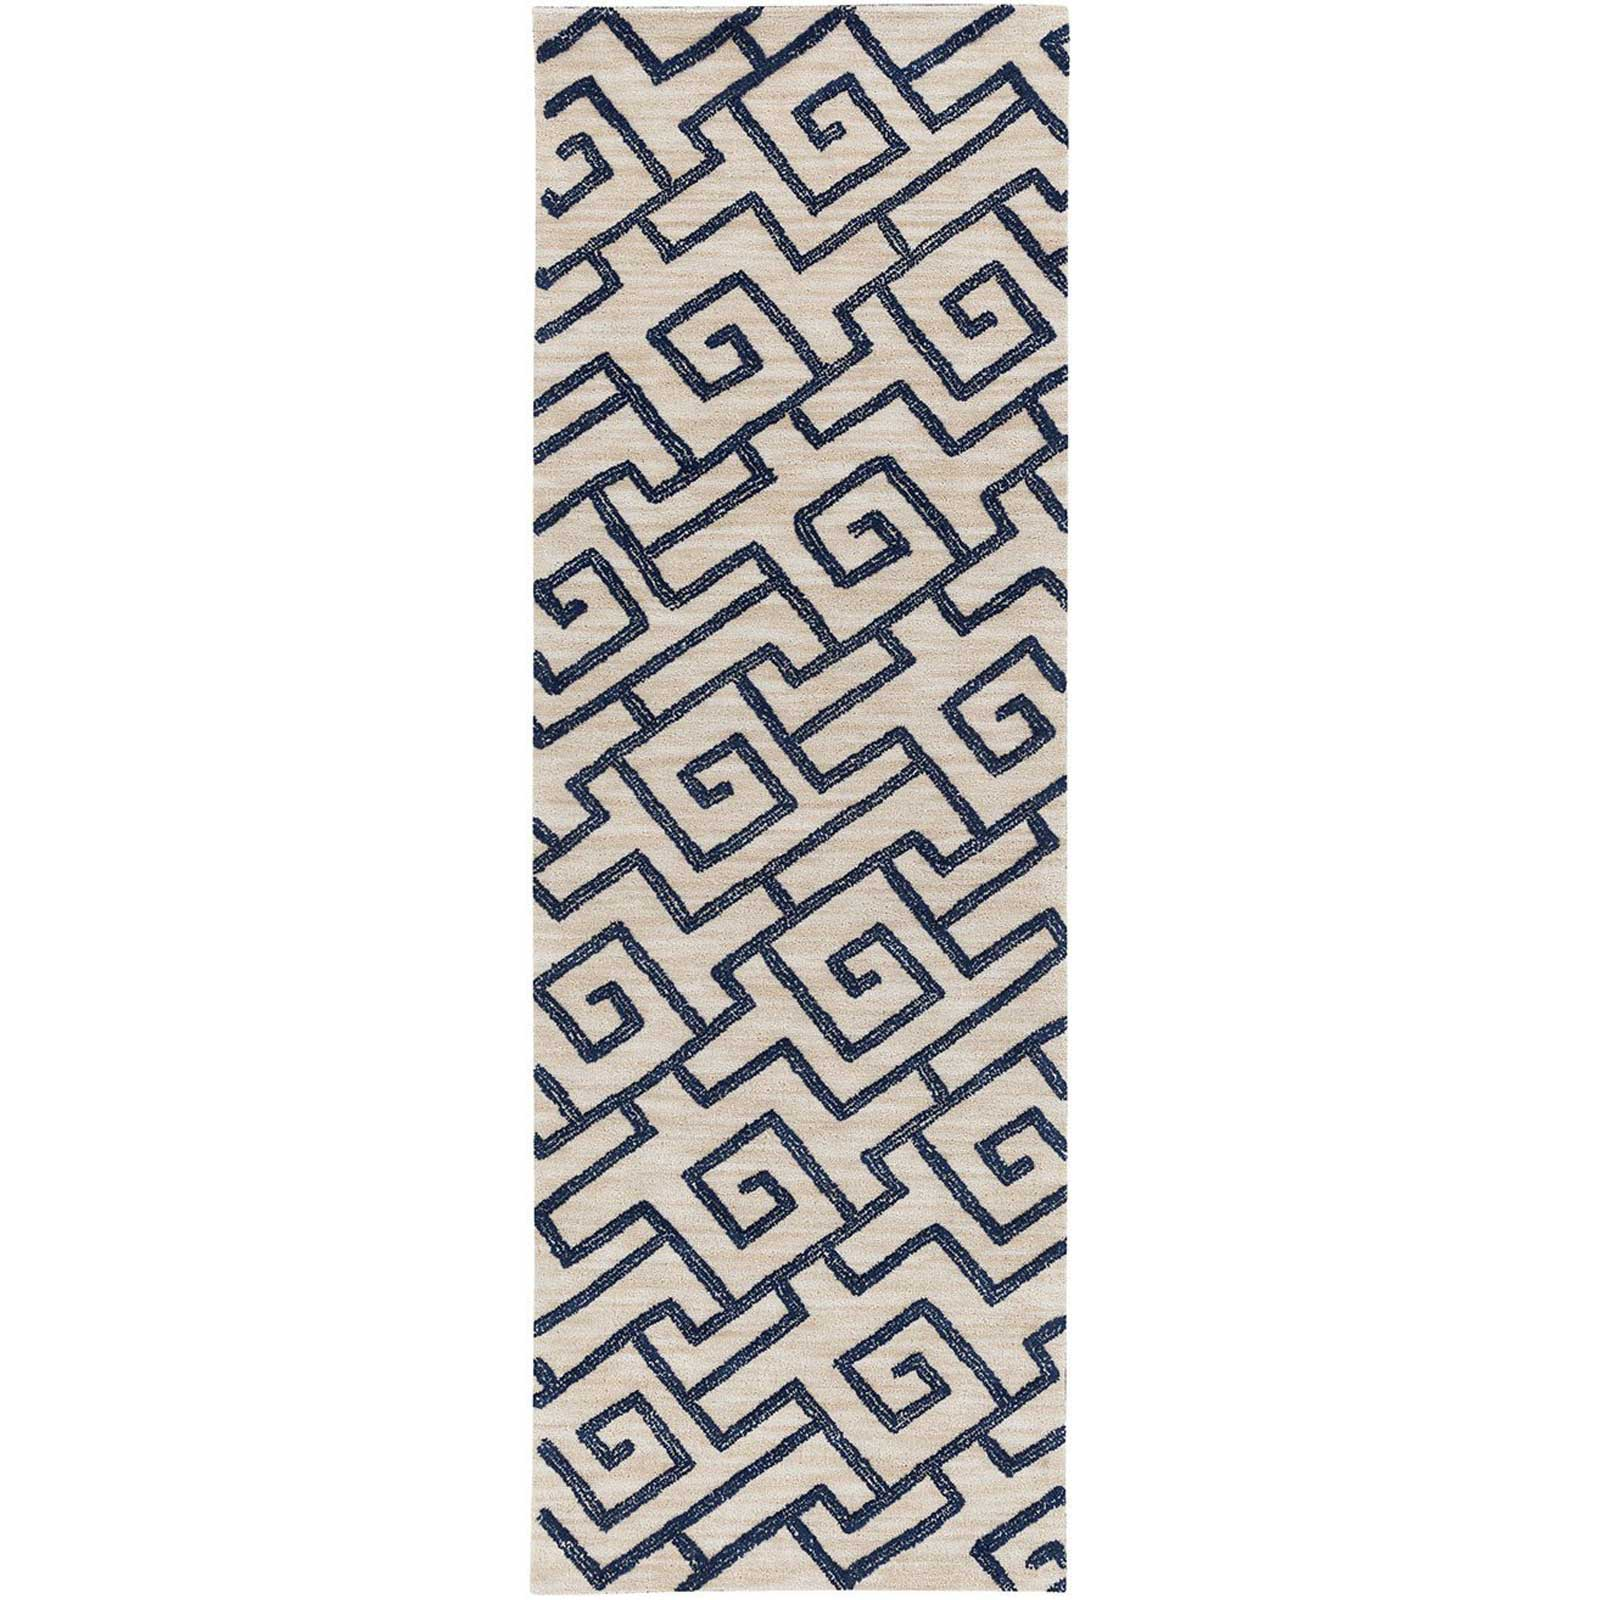 Ameila Light Gray/Navy Runner Rug